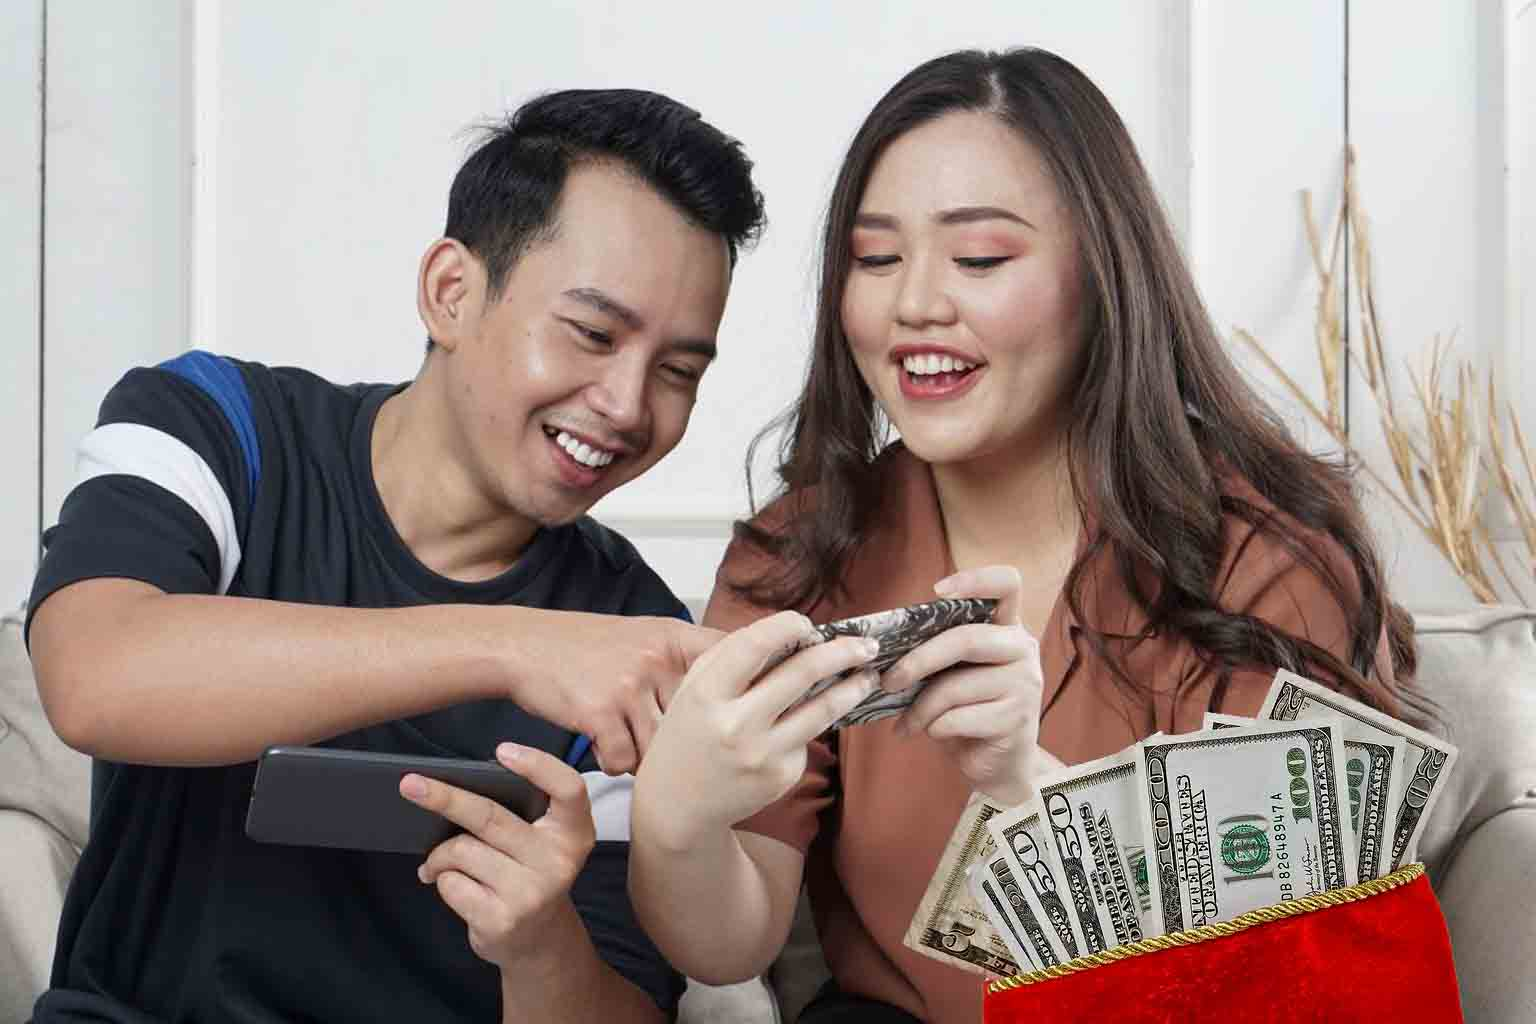 Play online games and earn money